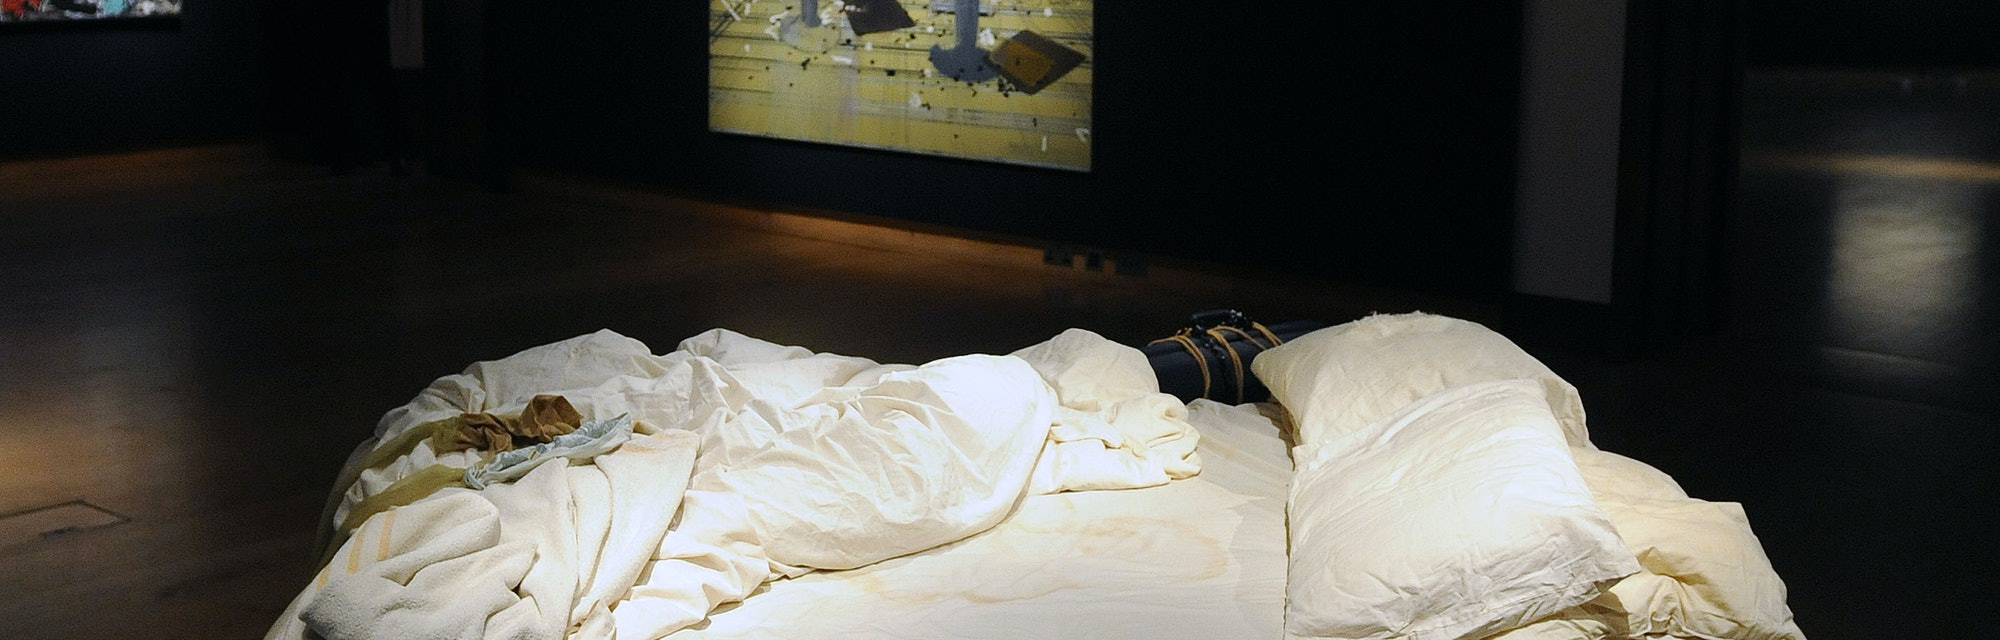 Tracey Emin's 'My Bed' which is to be offered at auction for the first time with an estimate of 800,...